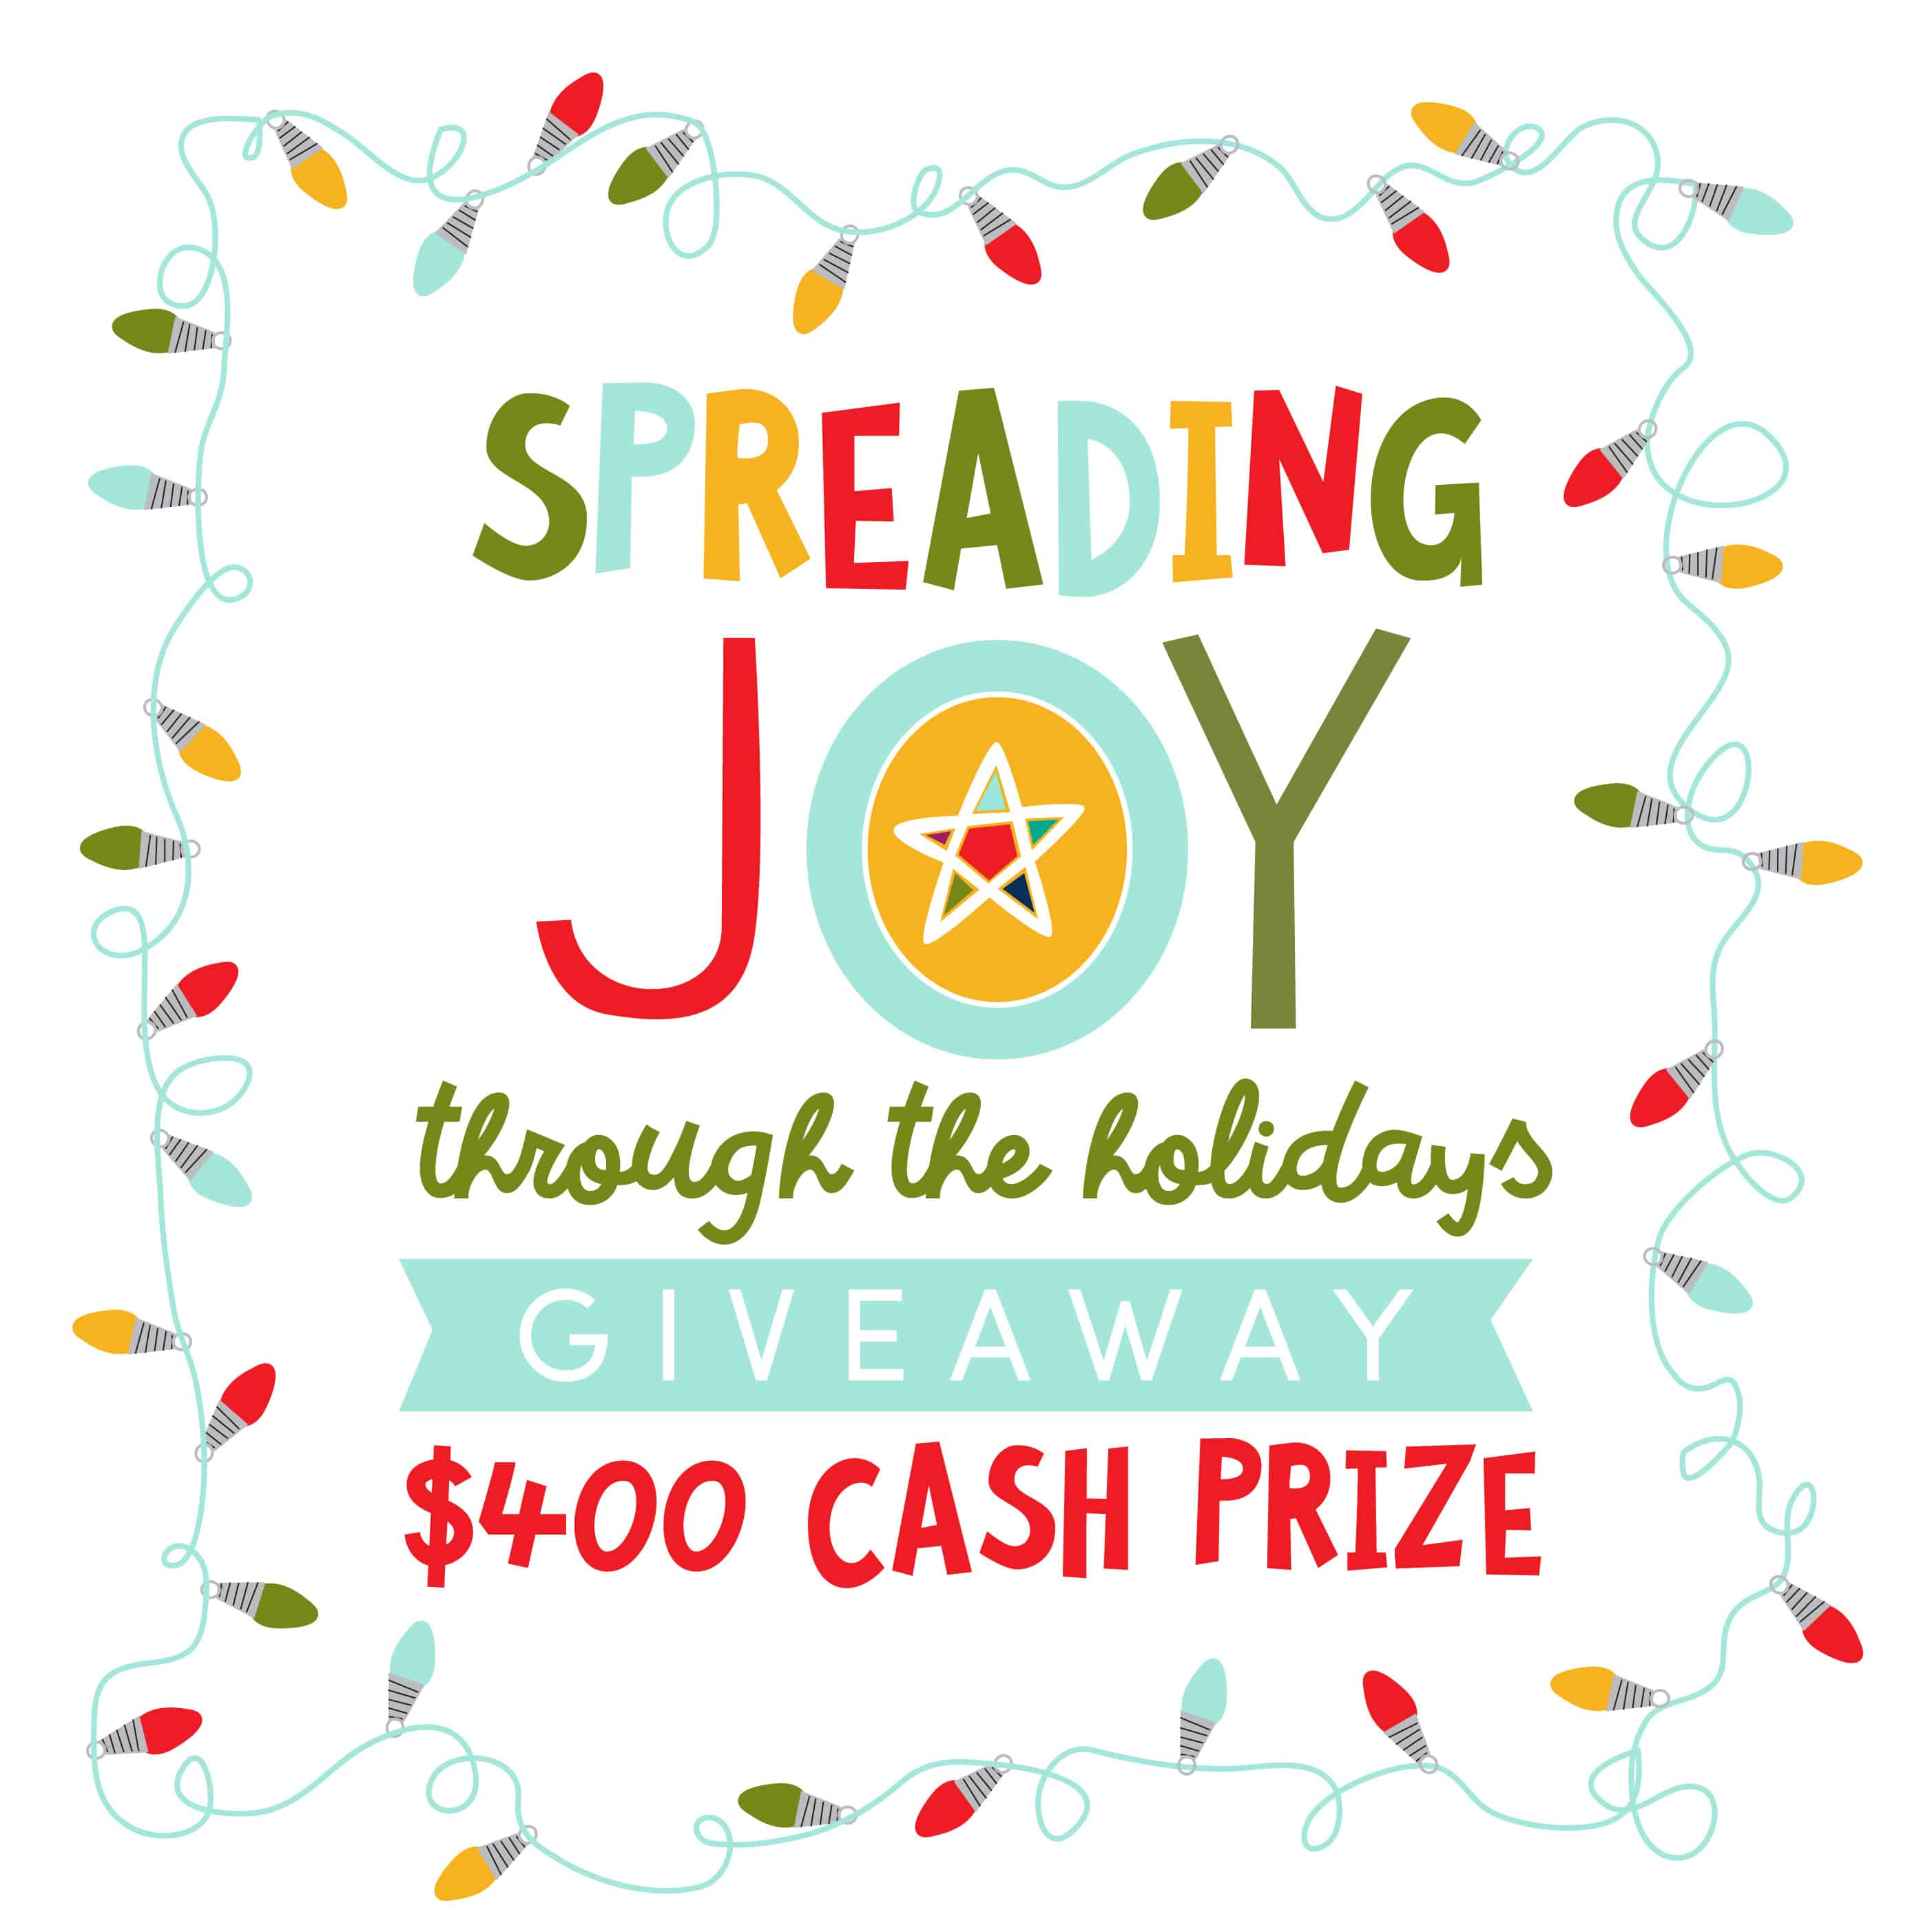 Spread Joy $400 Cash Giveaway